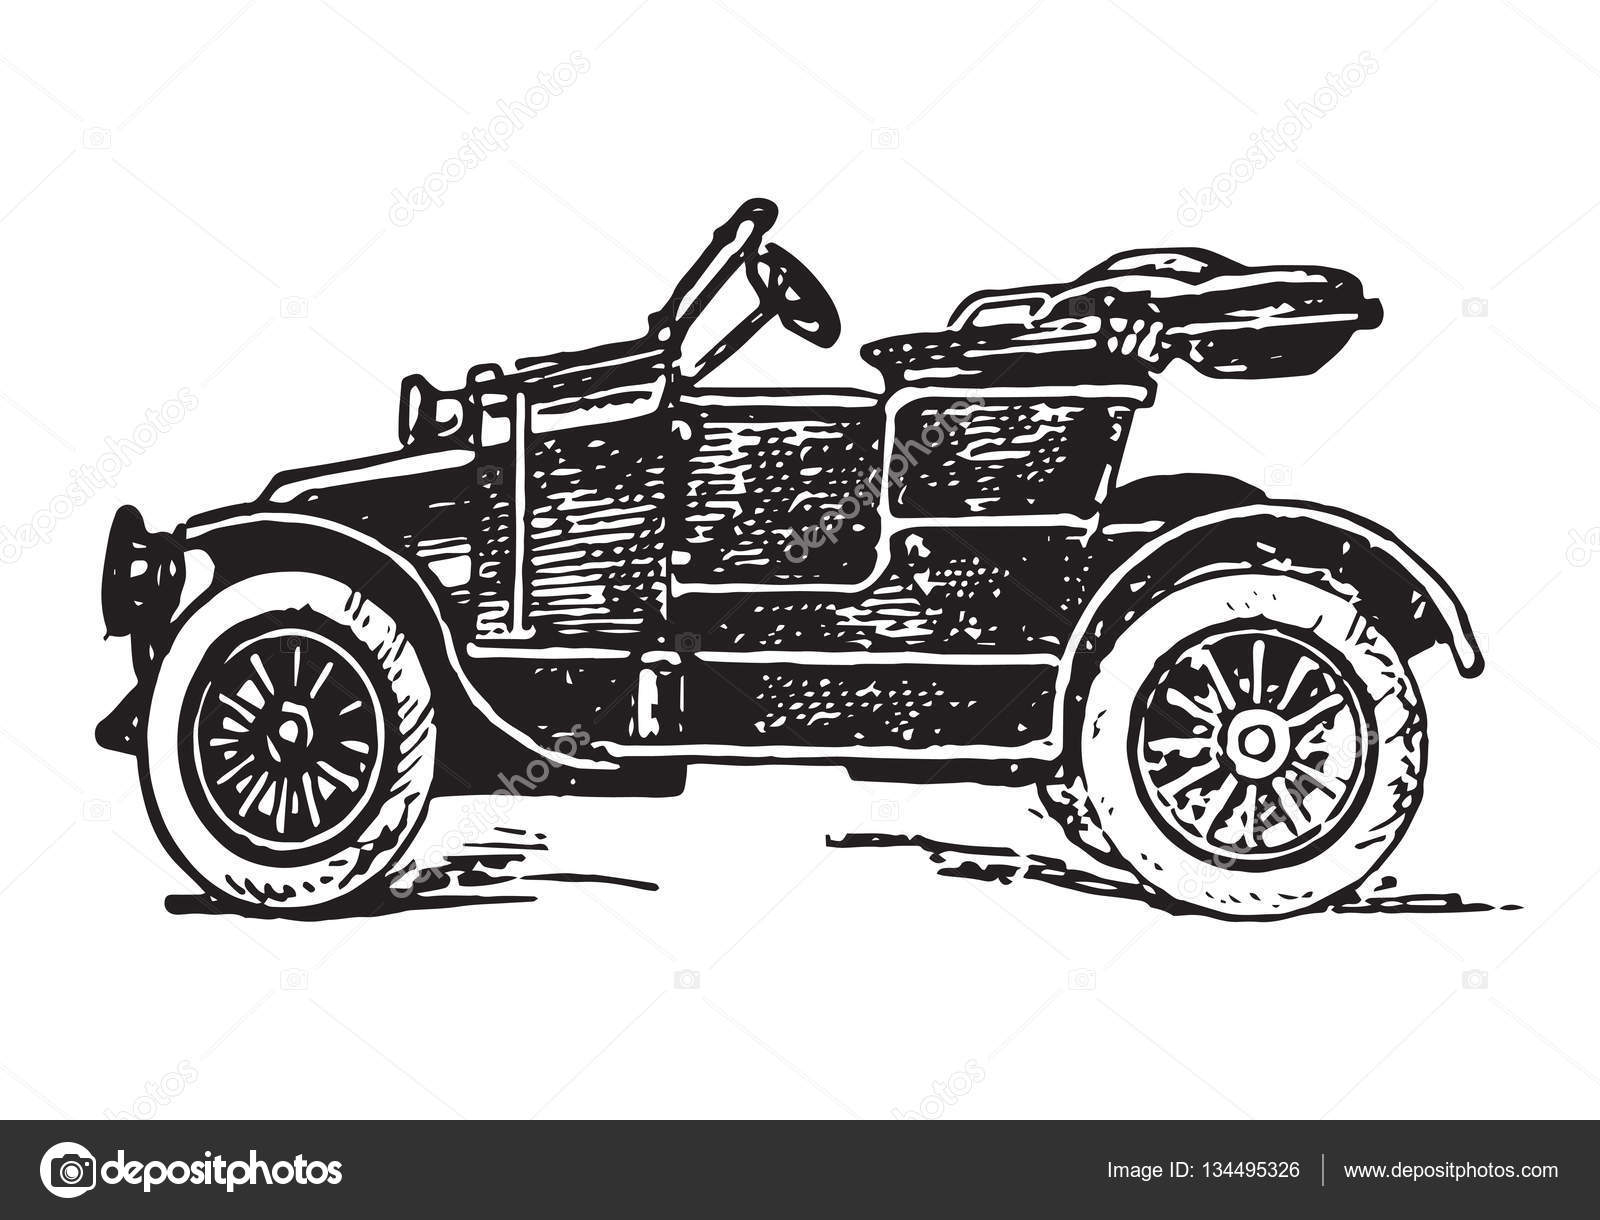 Voiturette car vintage engraving — Stock Vector © EnginKorkmaz ...